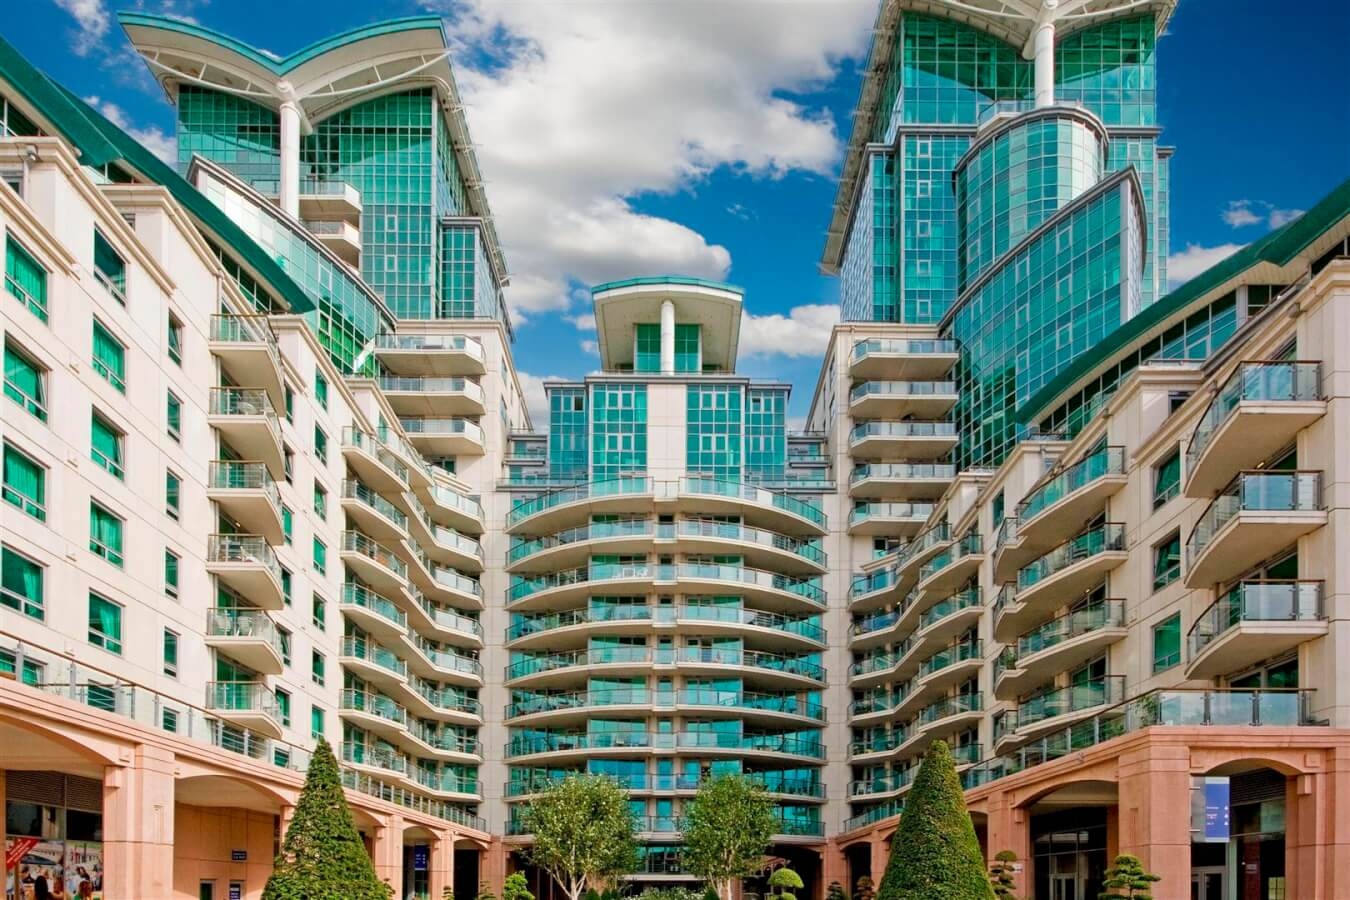 serviced apartments in vauxhall, london | dreamhouse apartments